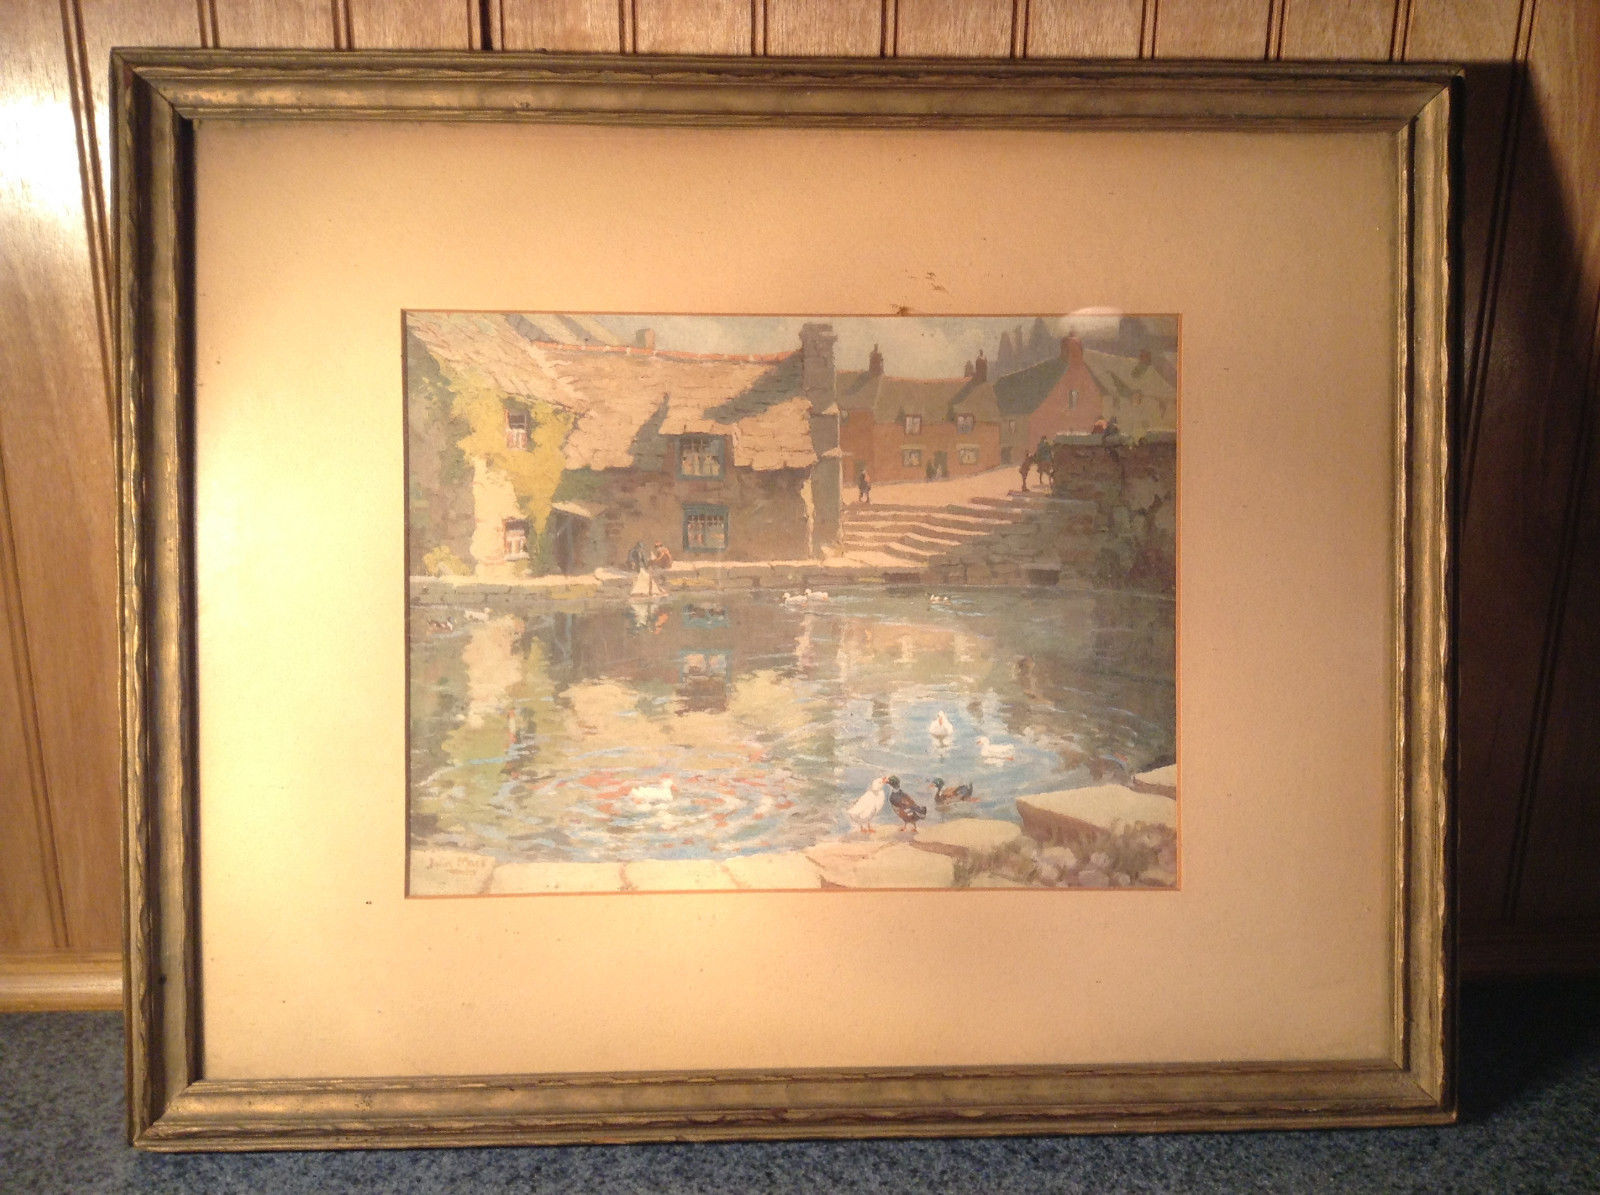 Vintage Framed Reproduction of Town Reservoir by John Moss